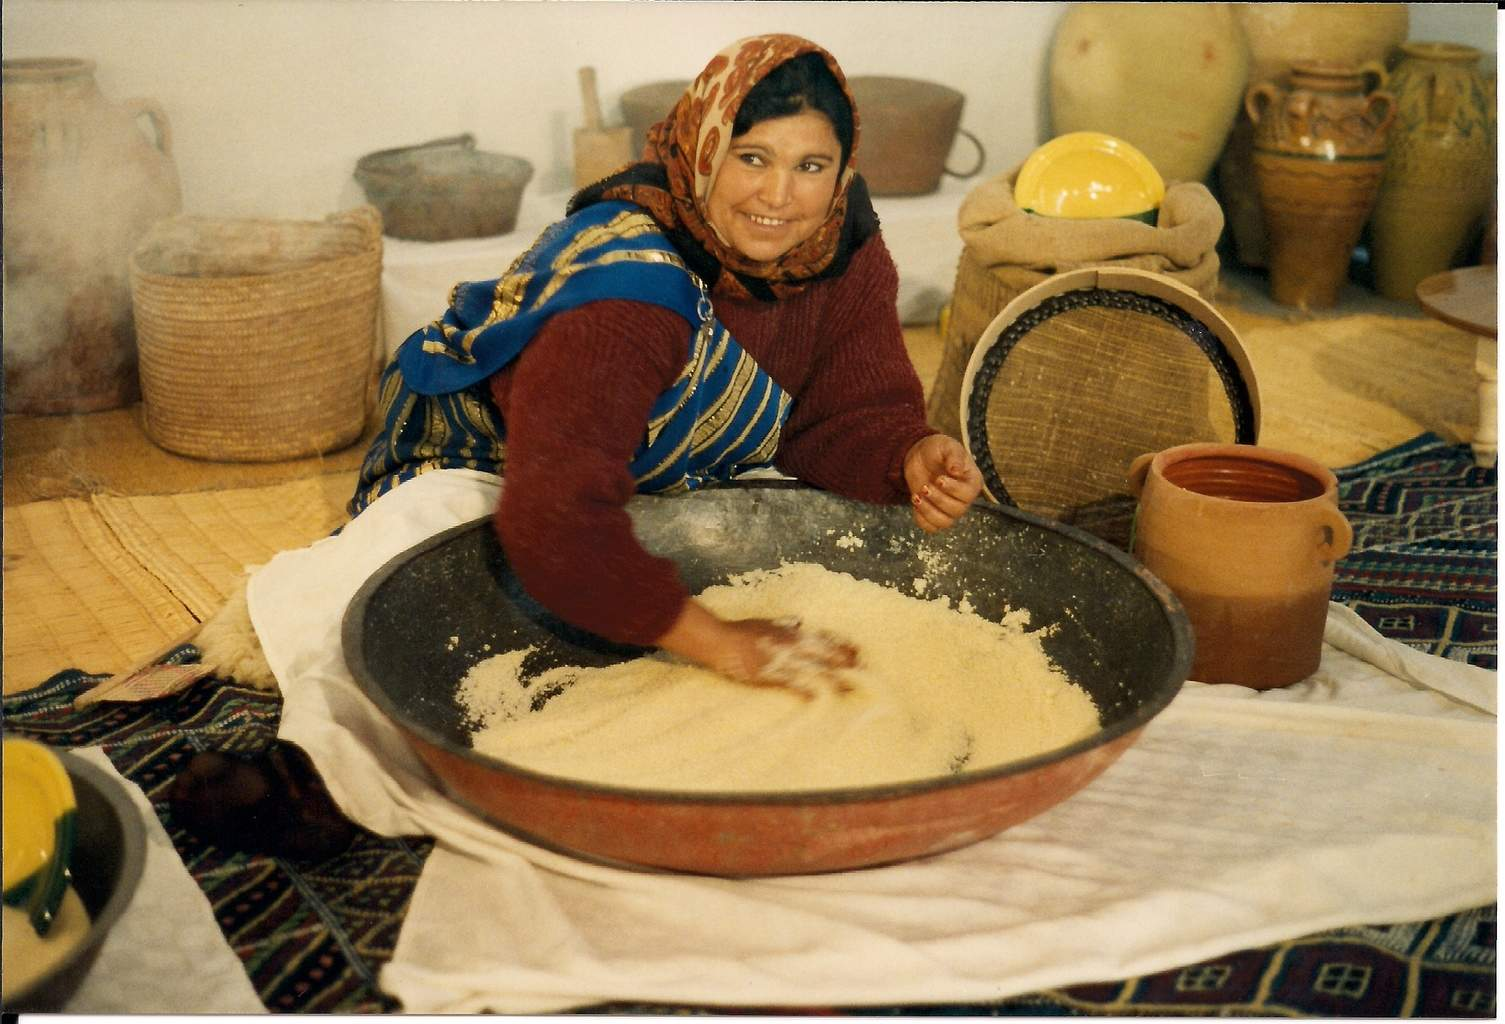 Sfax-couscous-making-93-HI-RES